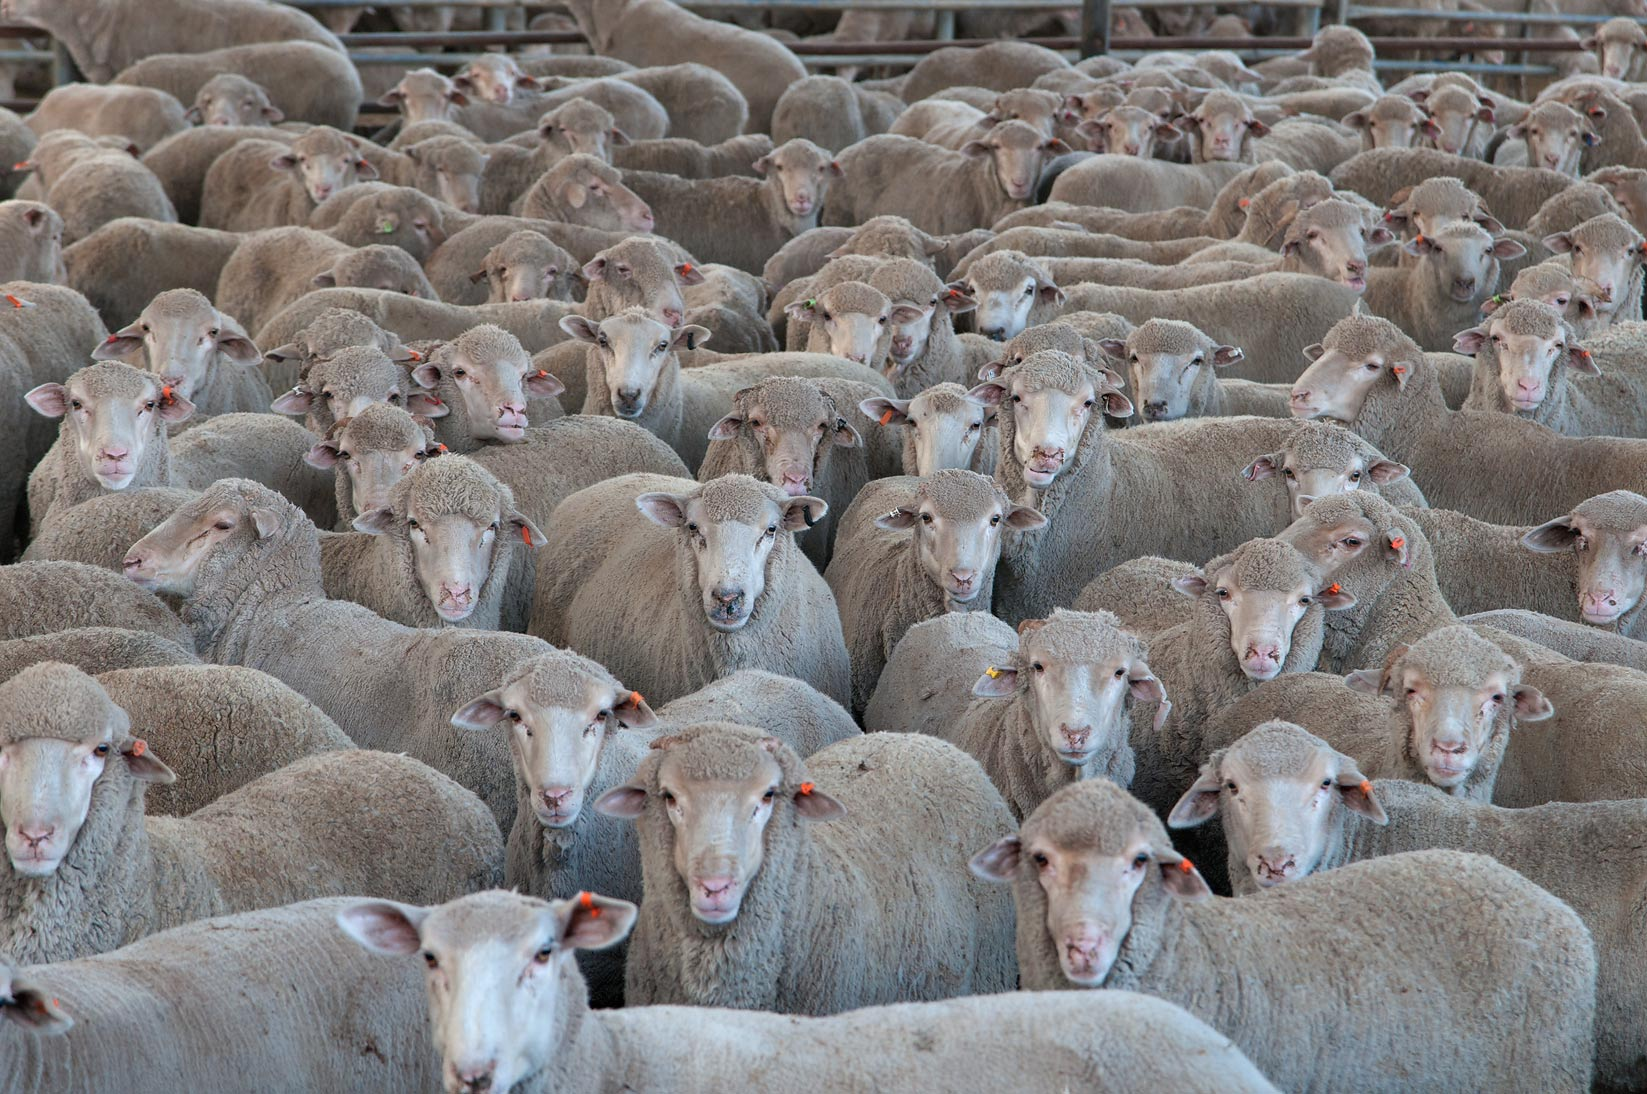 Herd of Australian sacrificial sheep in a feedlot...Mawashi Slaughterhouse. Doha, Qatar